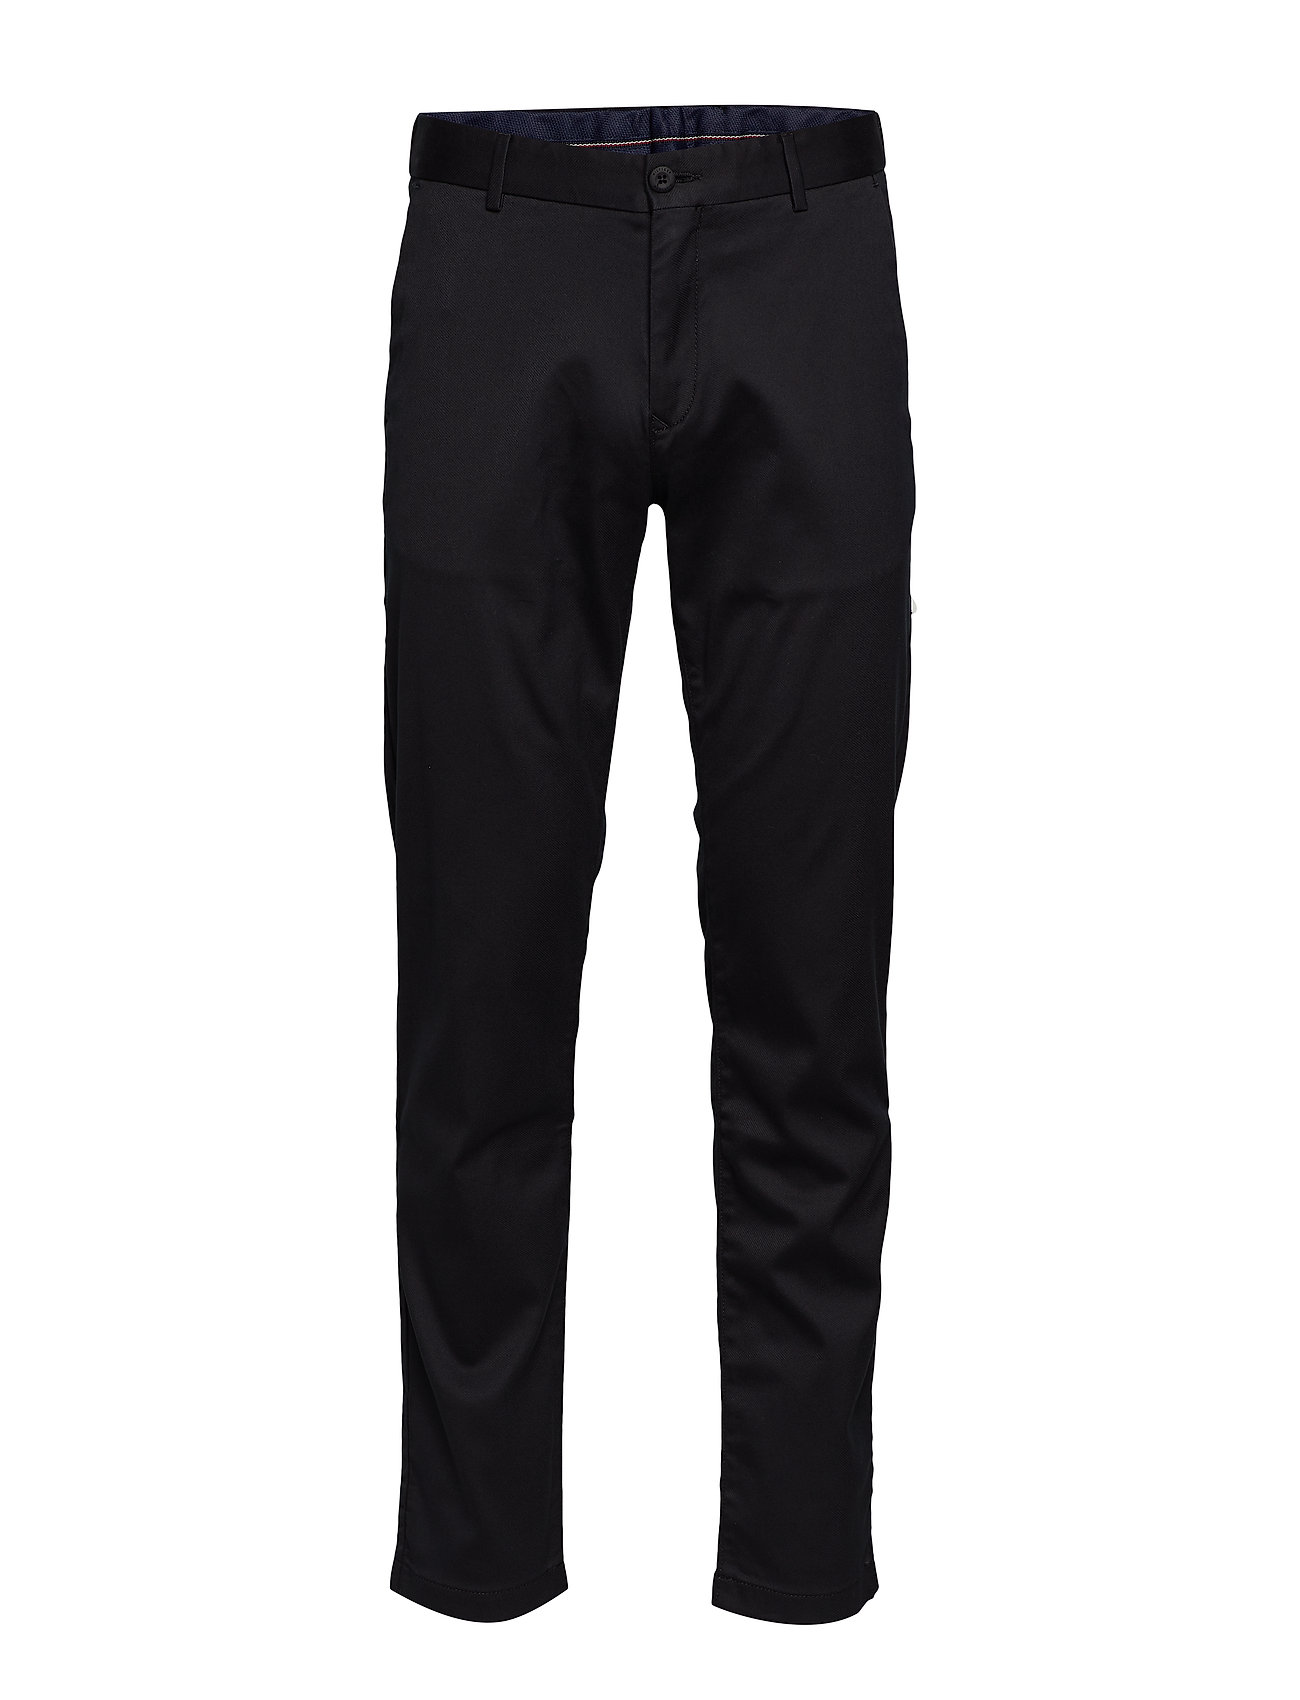 Tommy Hilfiger TAPERED TECH STRETCH TWILL FLEX - JET BLACK